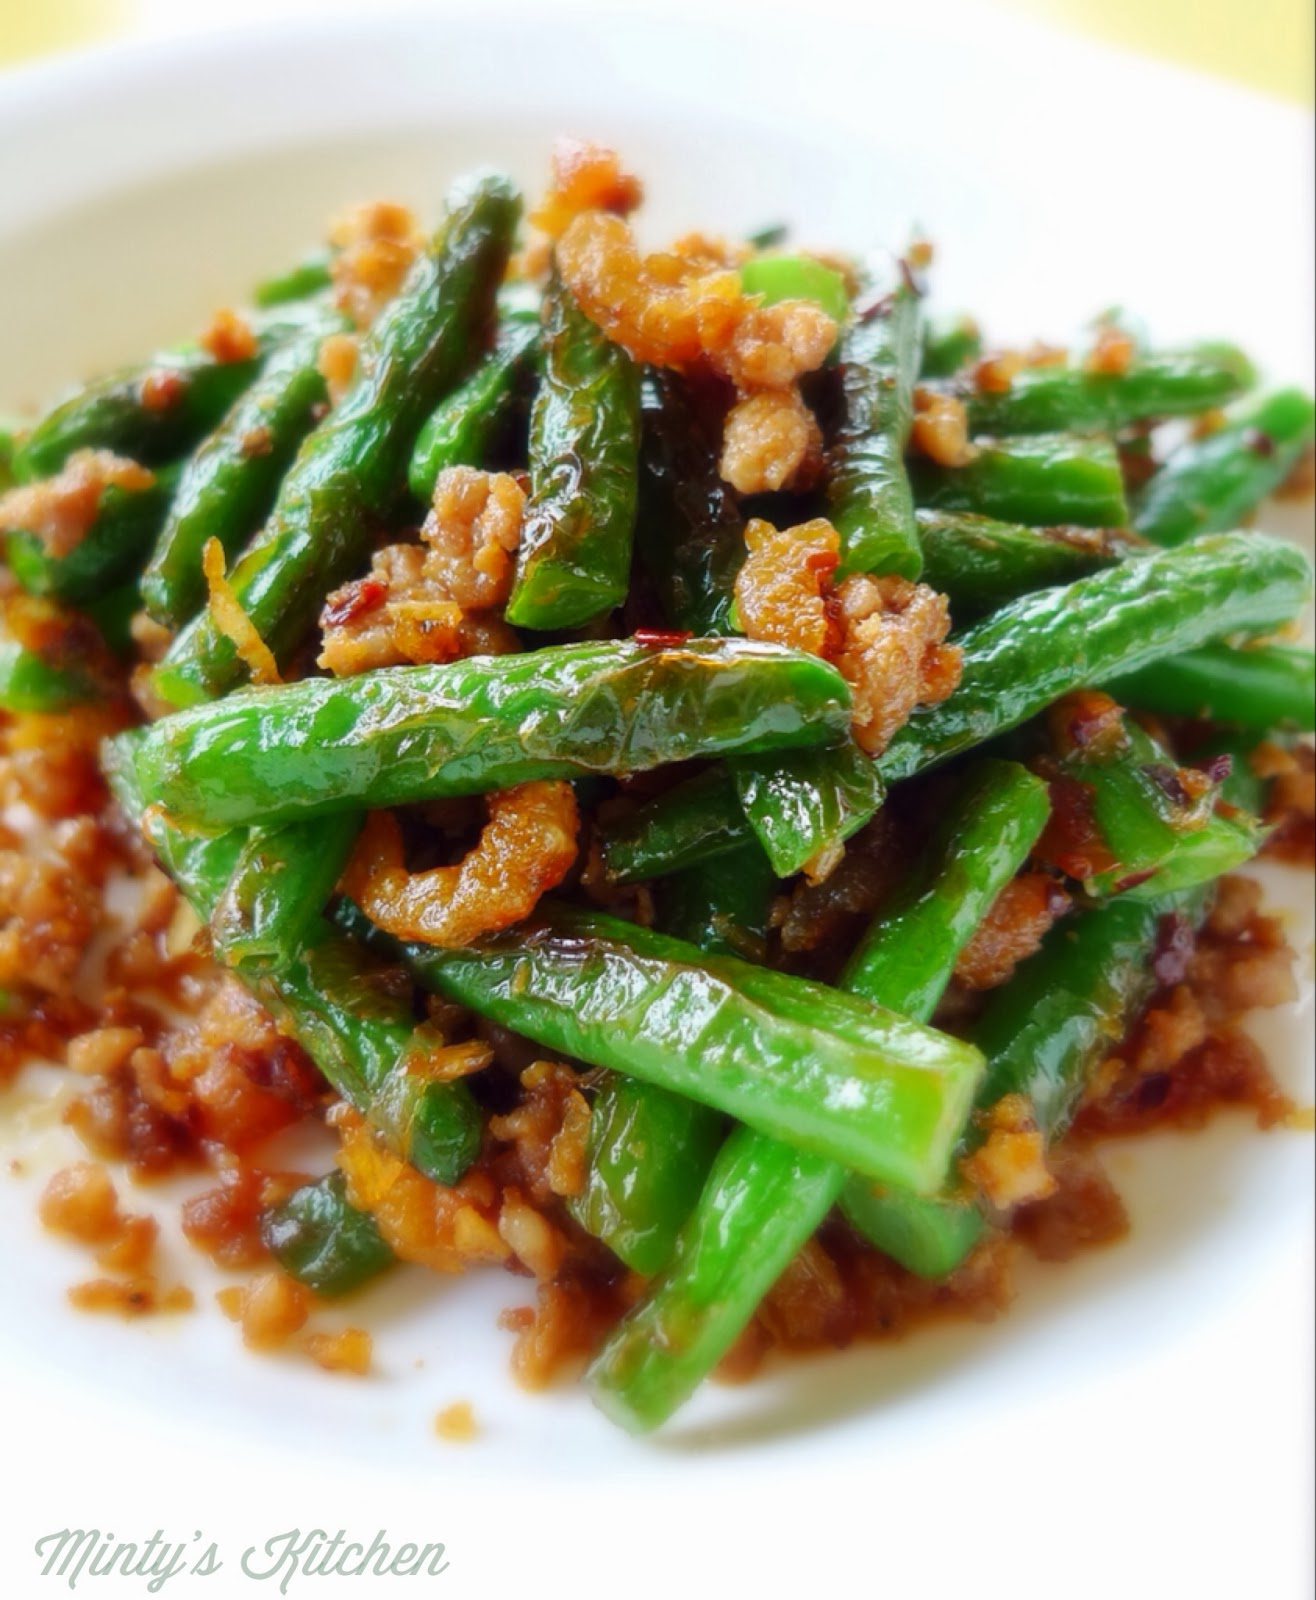 Minty's Kitchen: Fried Green Beans with Minced Pork & XO Sauce ...